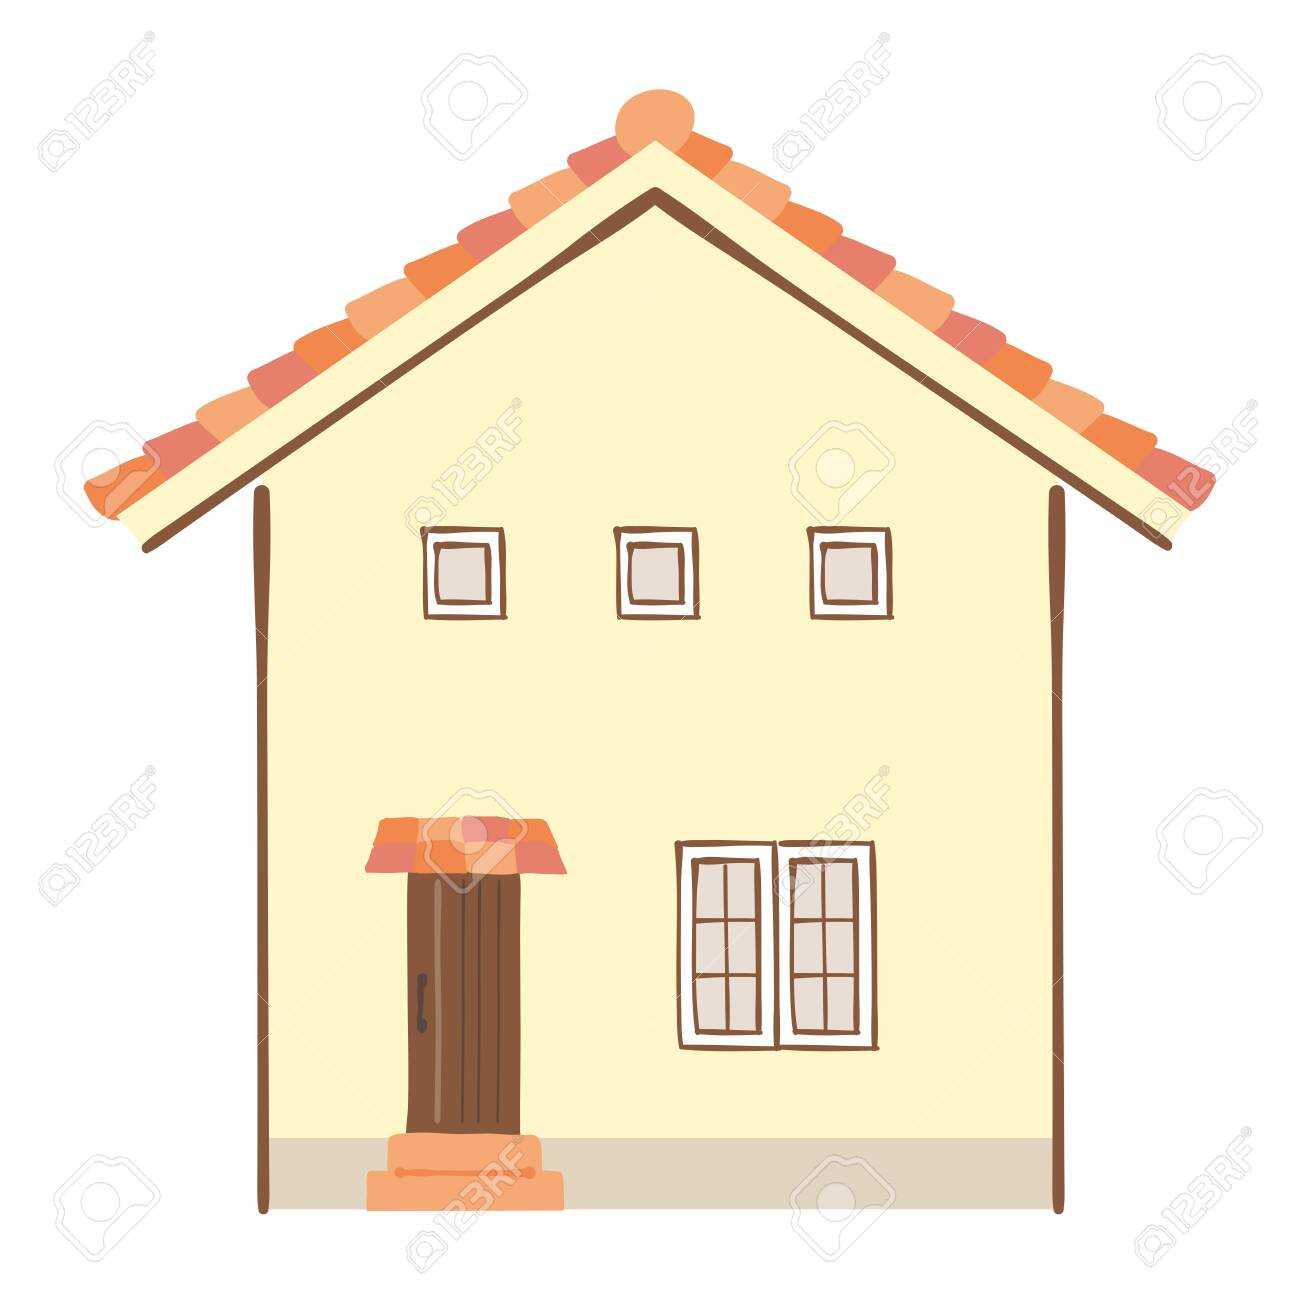 Illustration of houses with red roof - 133301516